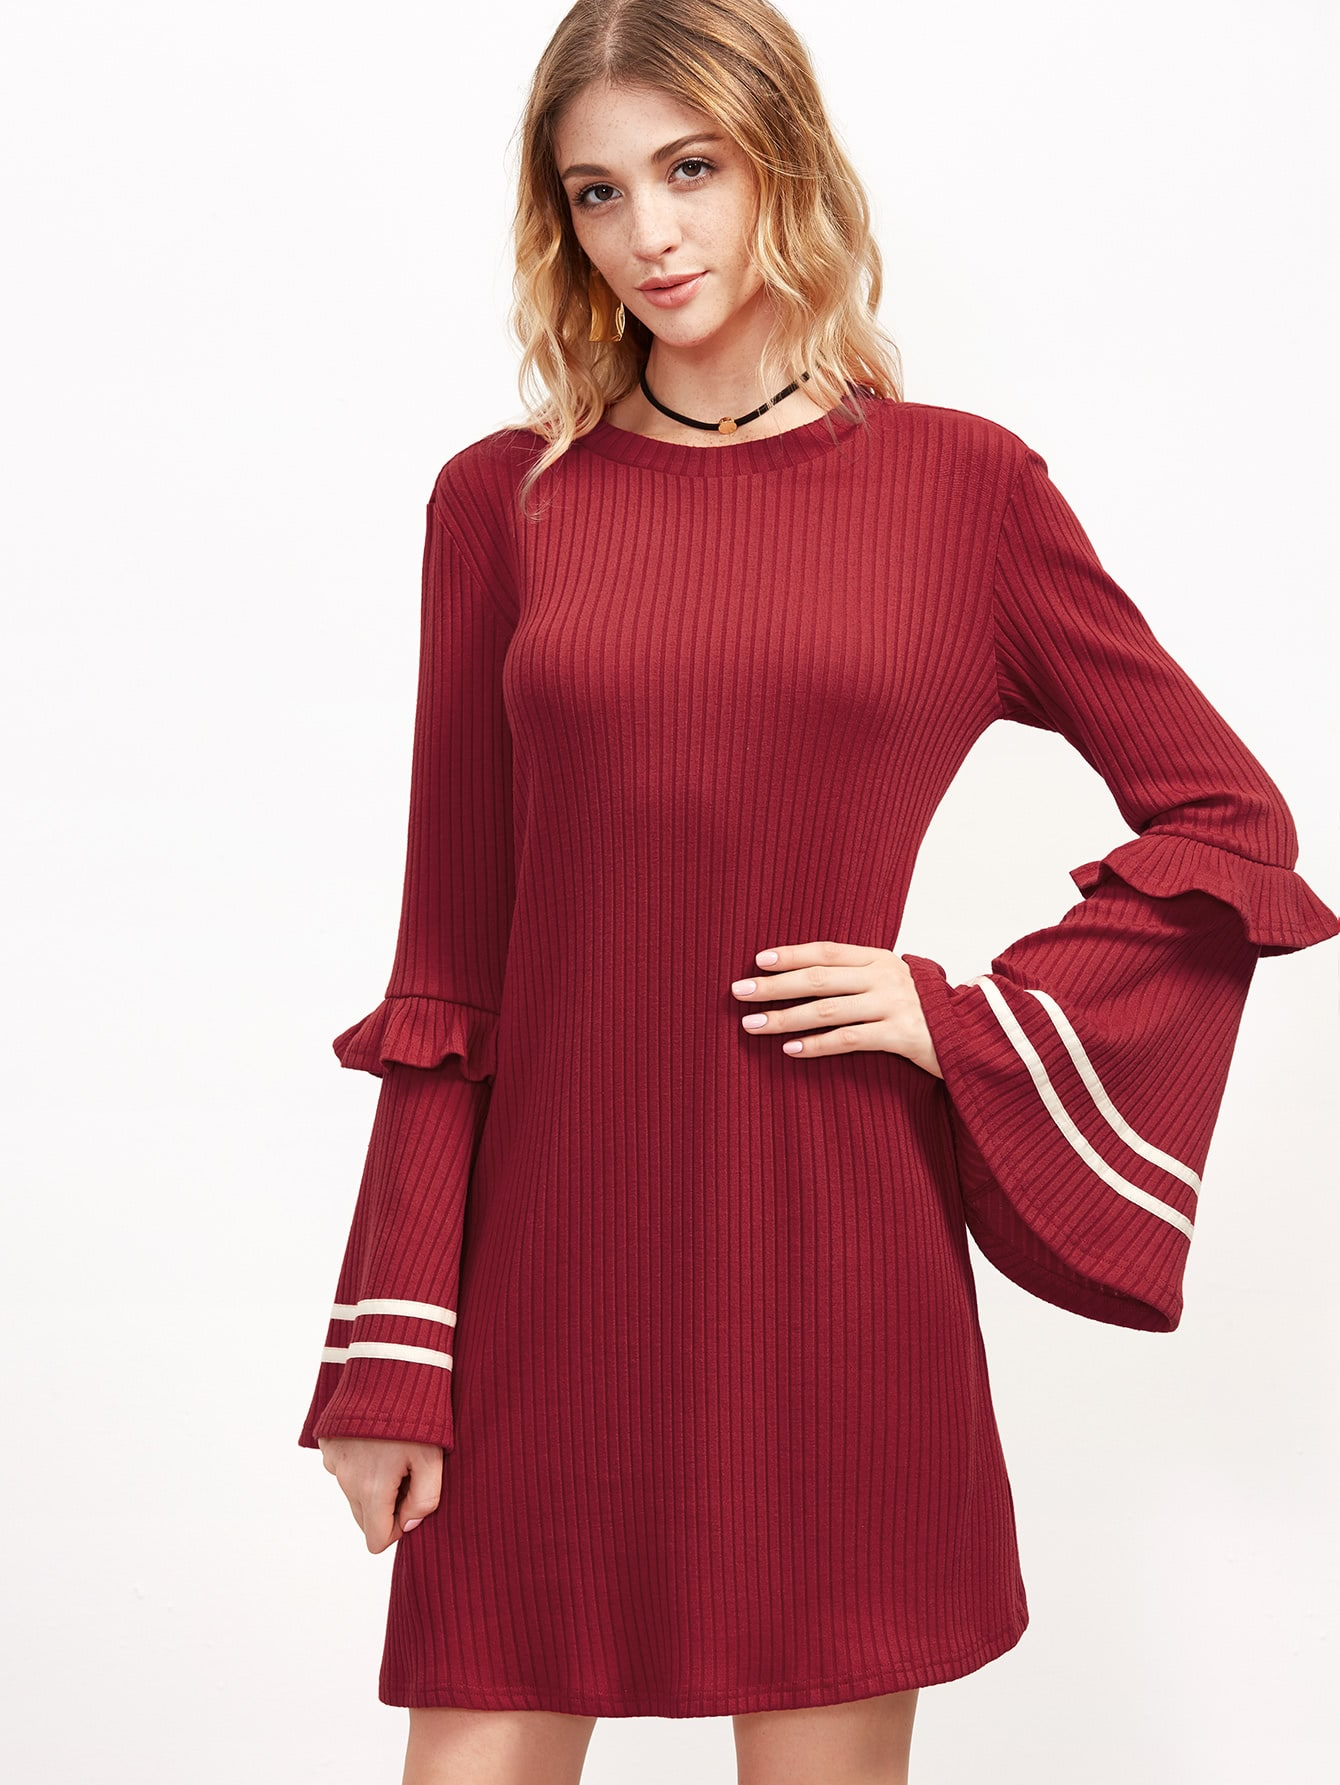 Red Striped Bell Sleeve Ribbed Dress dress161014703